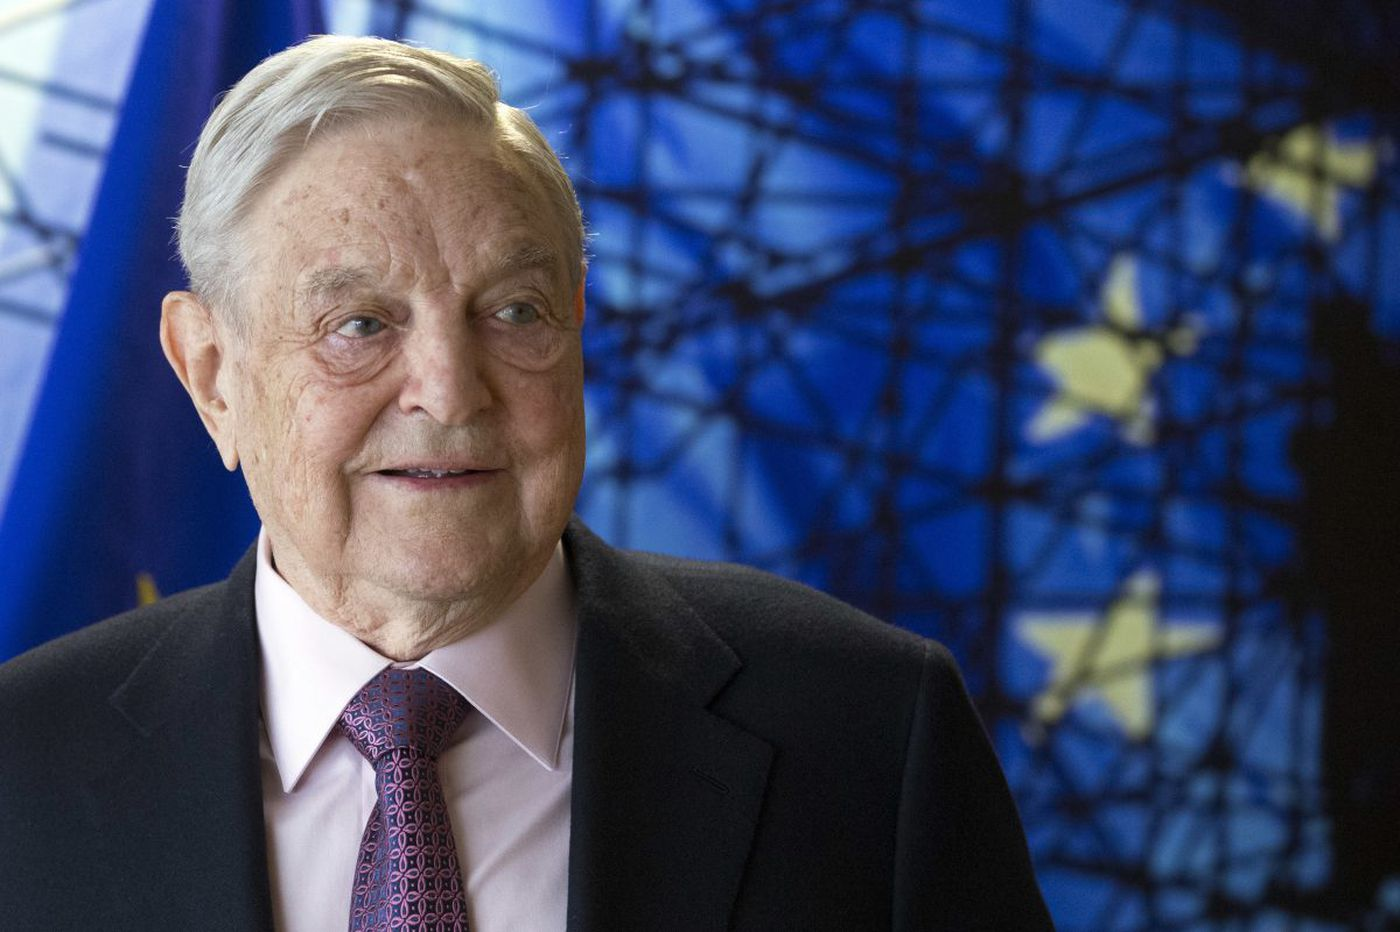 Facebook and Google are doomed, billionaire George Soros says